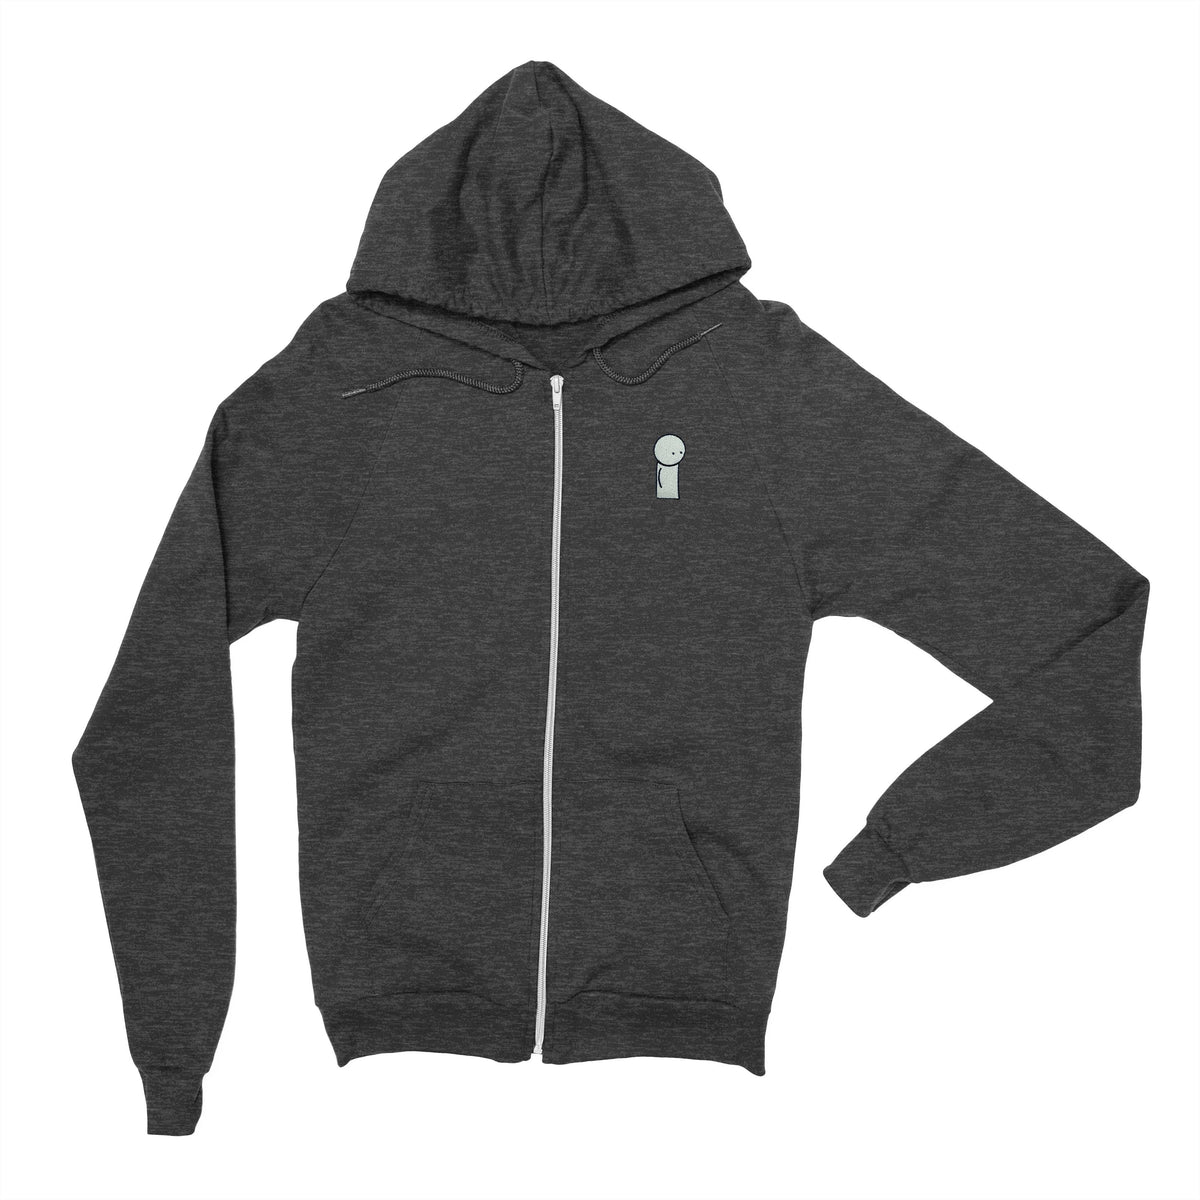 Oversimplified - Embroidered Zip Hoodie